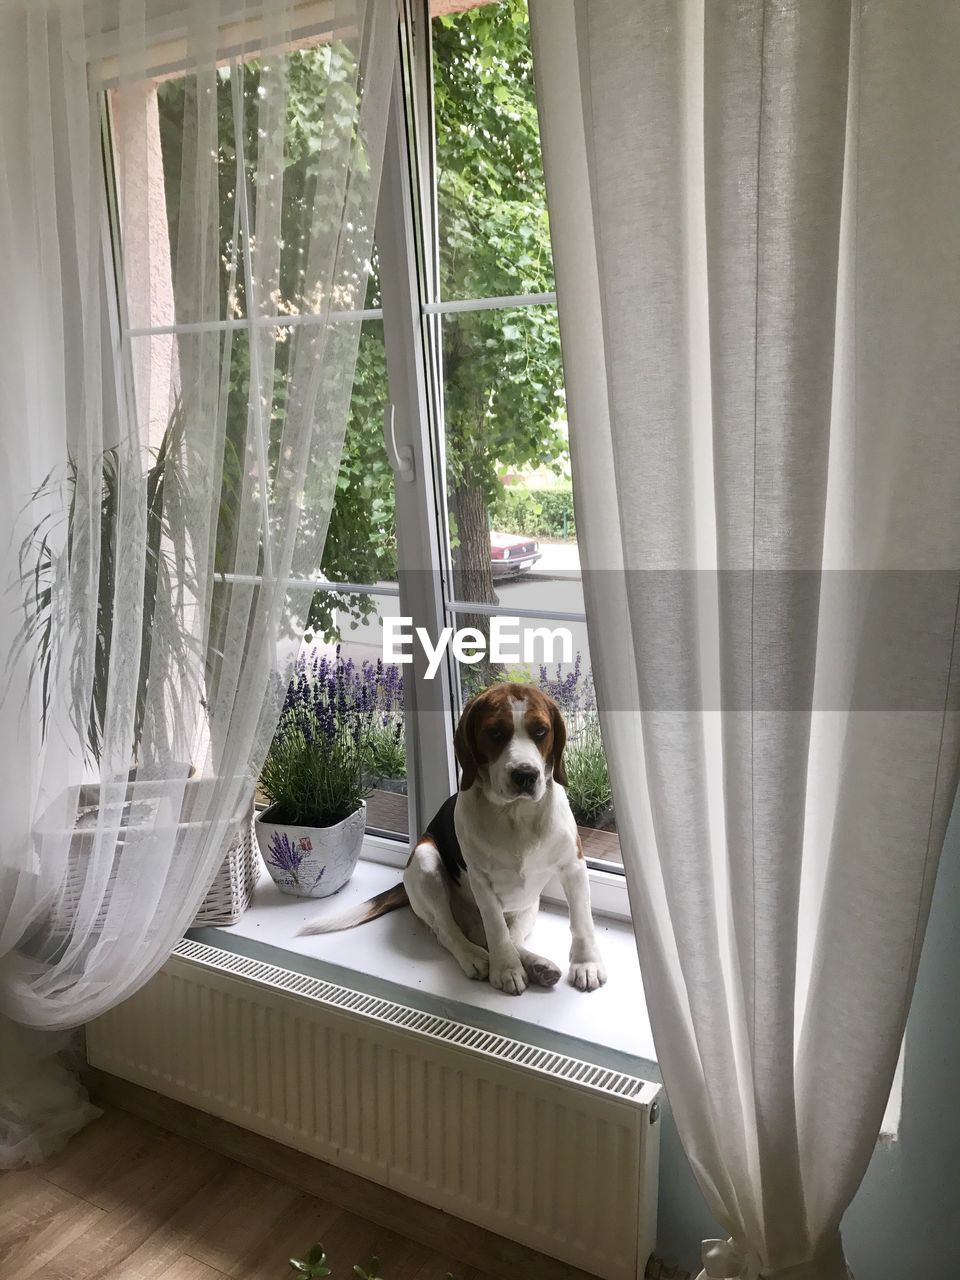 one animal, curtain, window, animal themes, domestic, animal, domestic animals, mammal, pets, indoors, day, no people, canine, glass - material, sitting, dog, vertebrate, window sill, transparent, looking